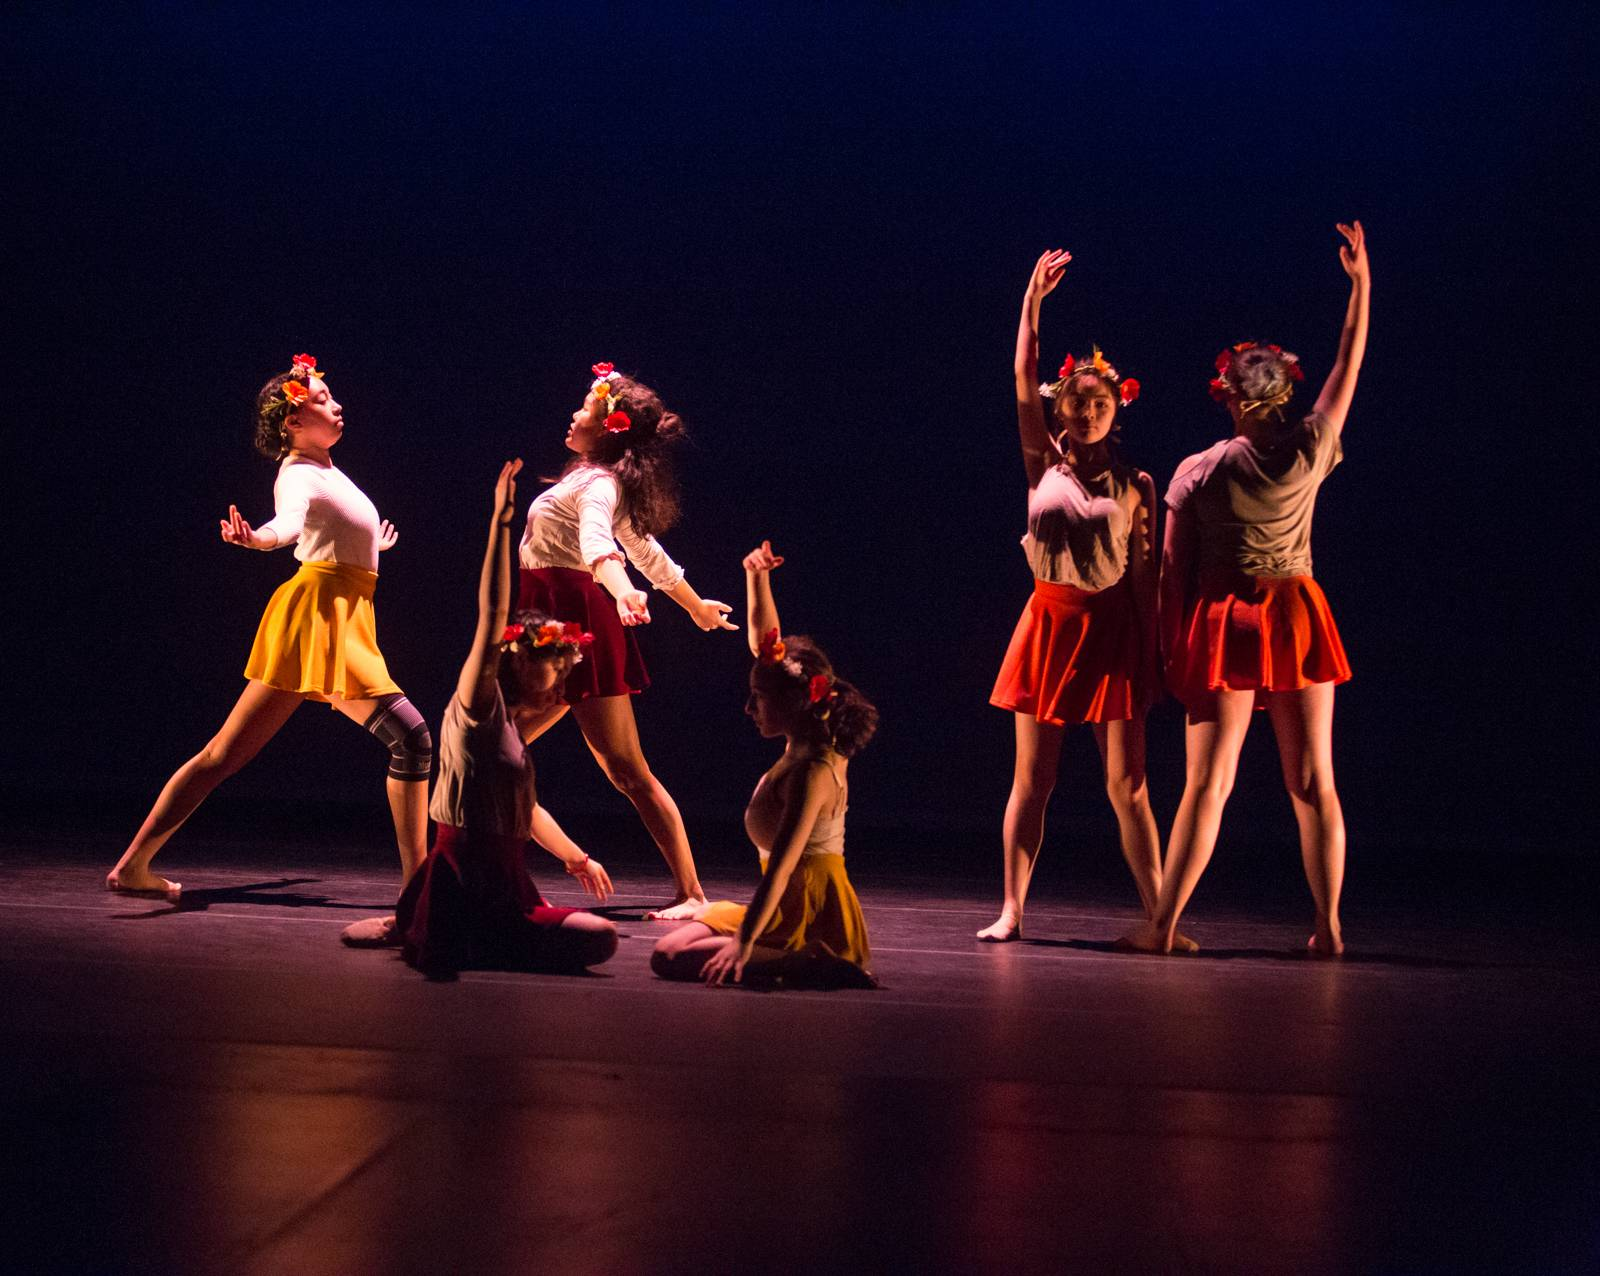 The Dance Department at Bard College at Simon's Rock presented its first ever Fall Dance Festival December 8-10 in the Daniel Arts Center, showcasing dance pieces created and performed by students and faculty.